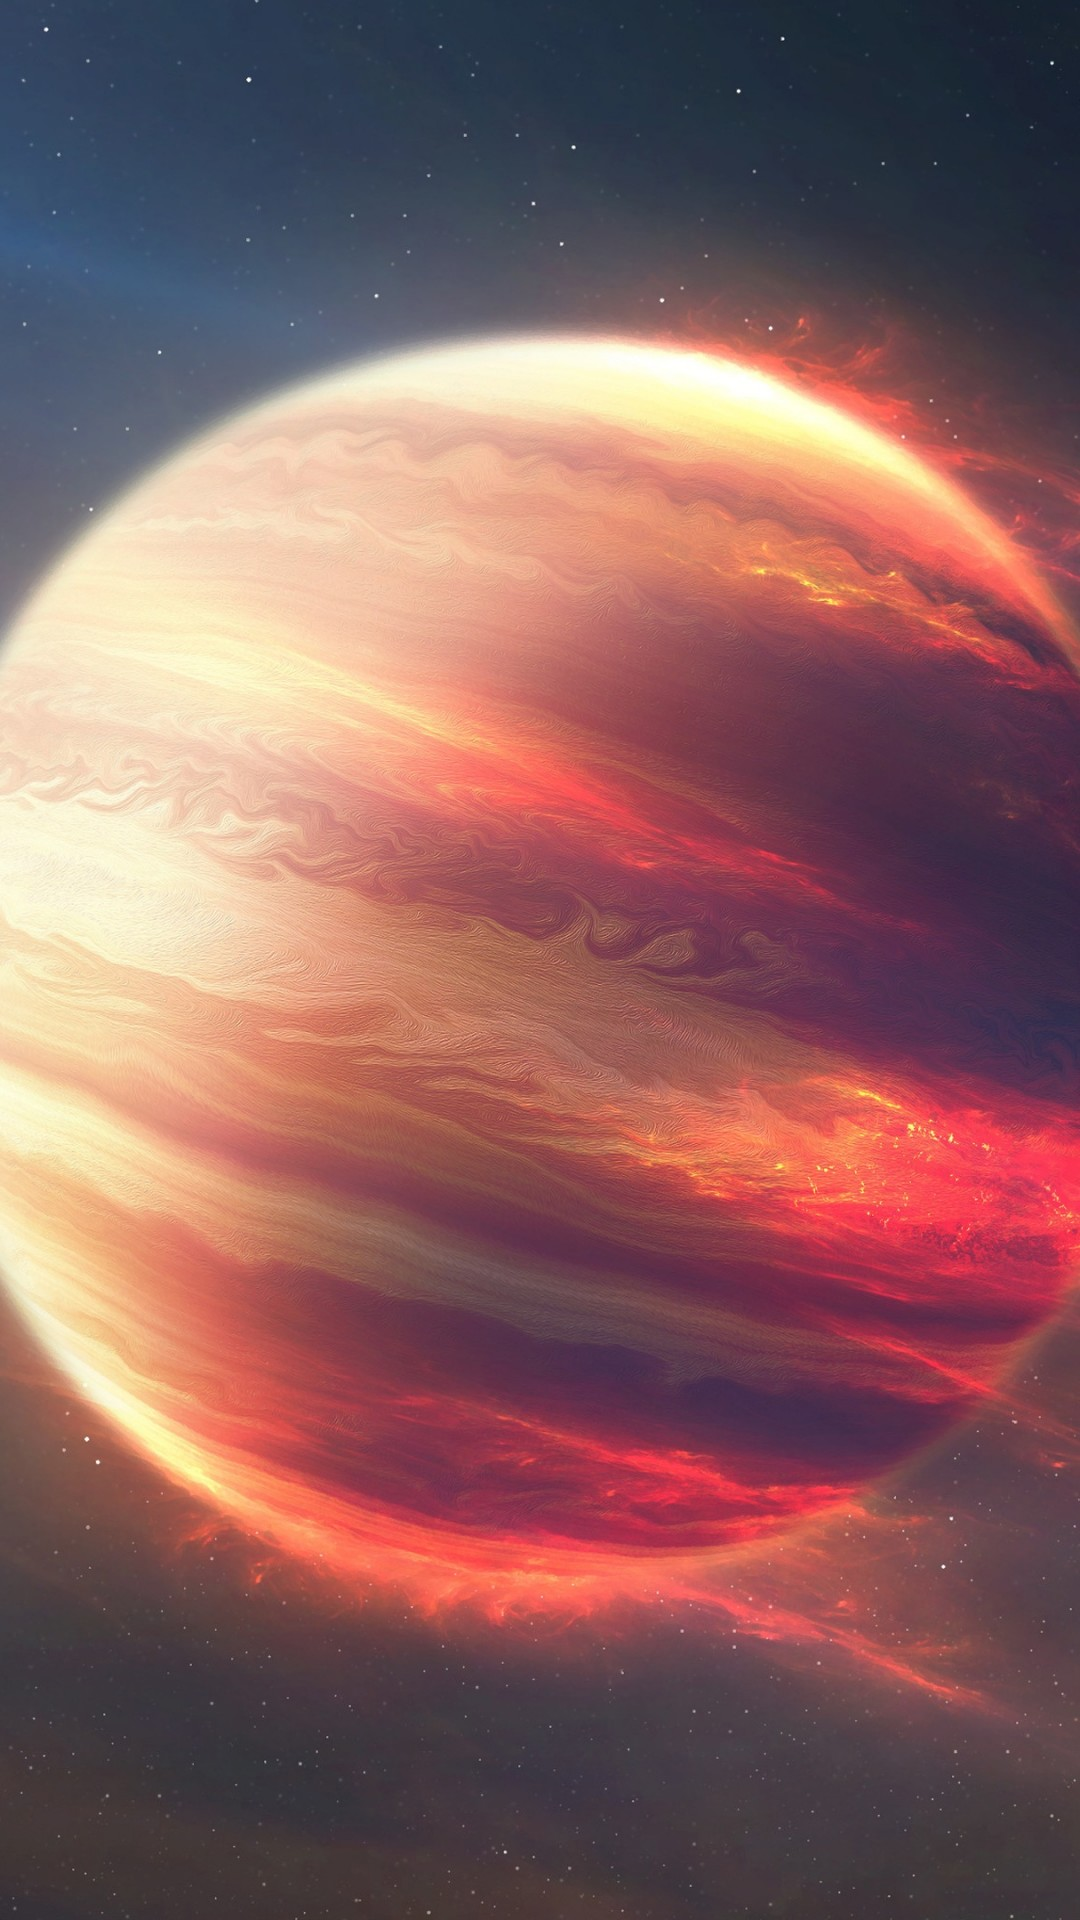 Hd Wallpapers Of Girls And Cars Wallpaper Space Fire Planet Exoplanet Planet Space